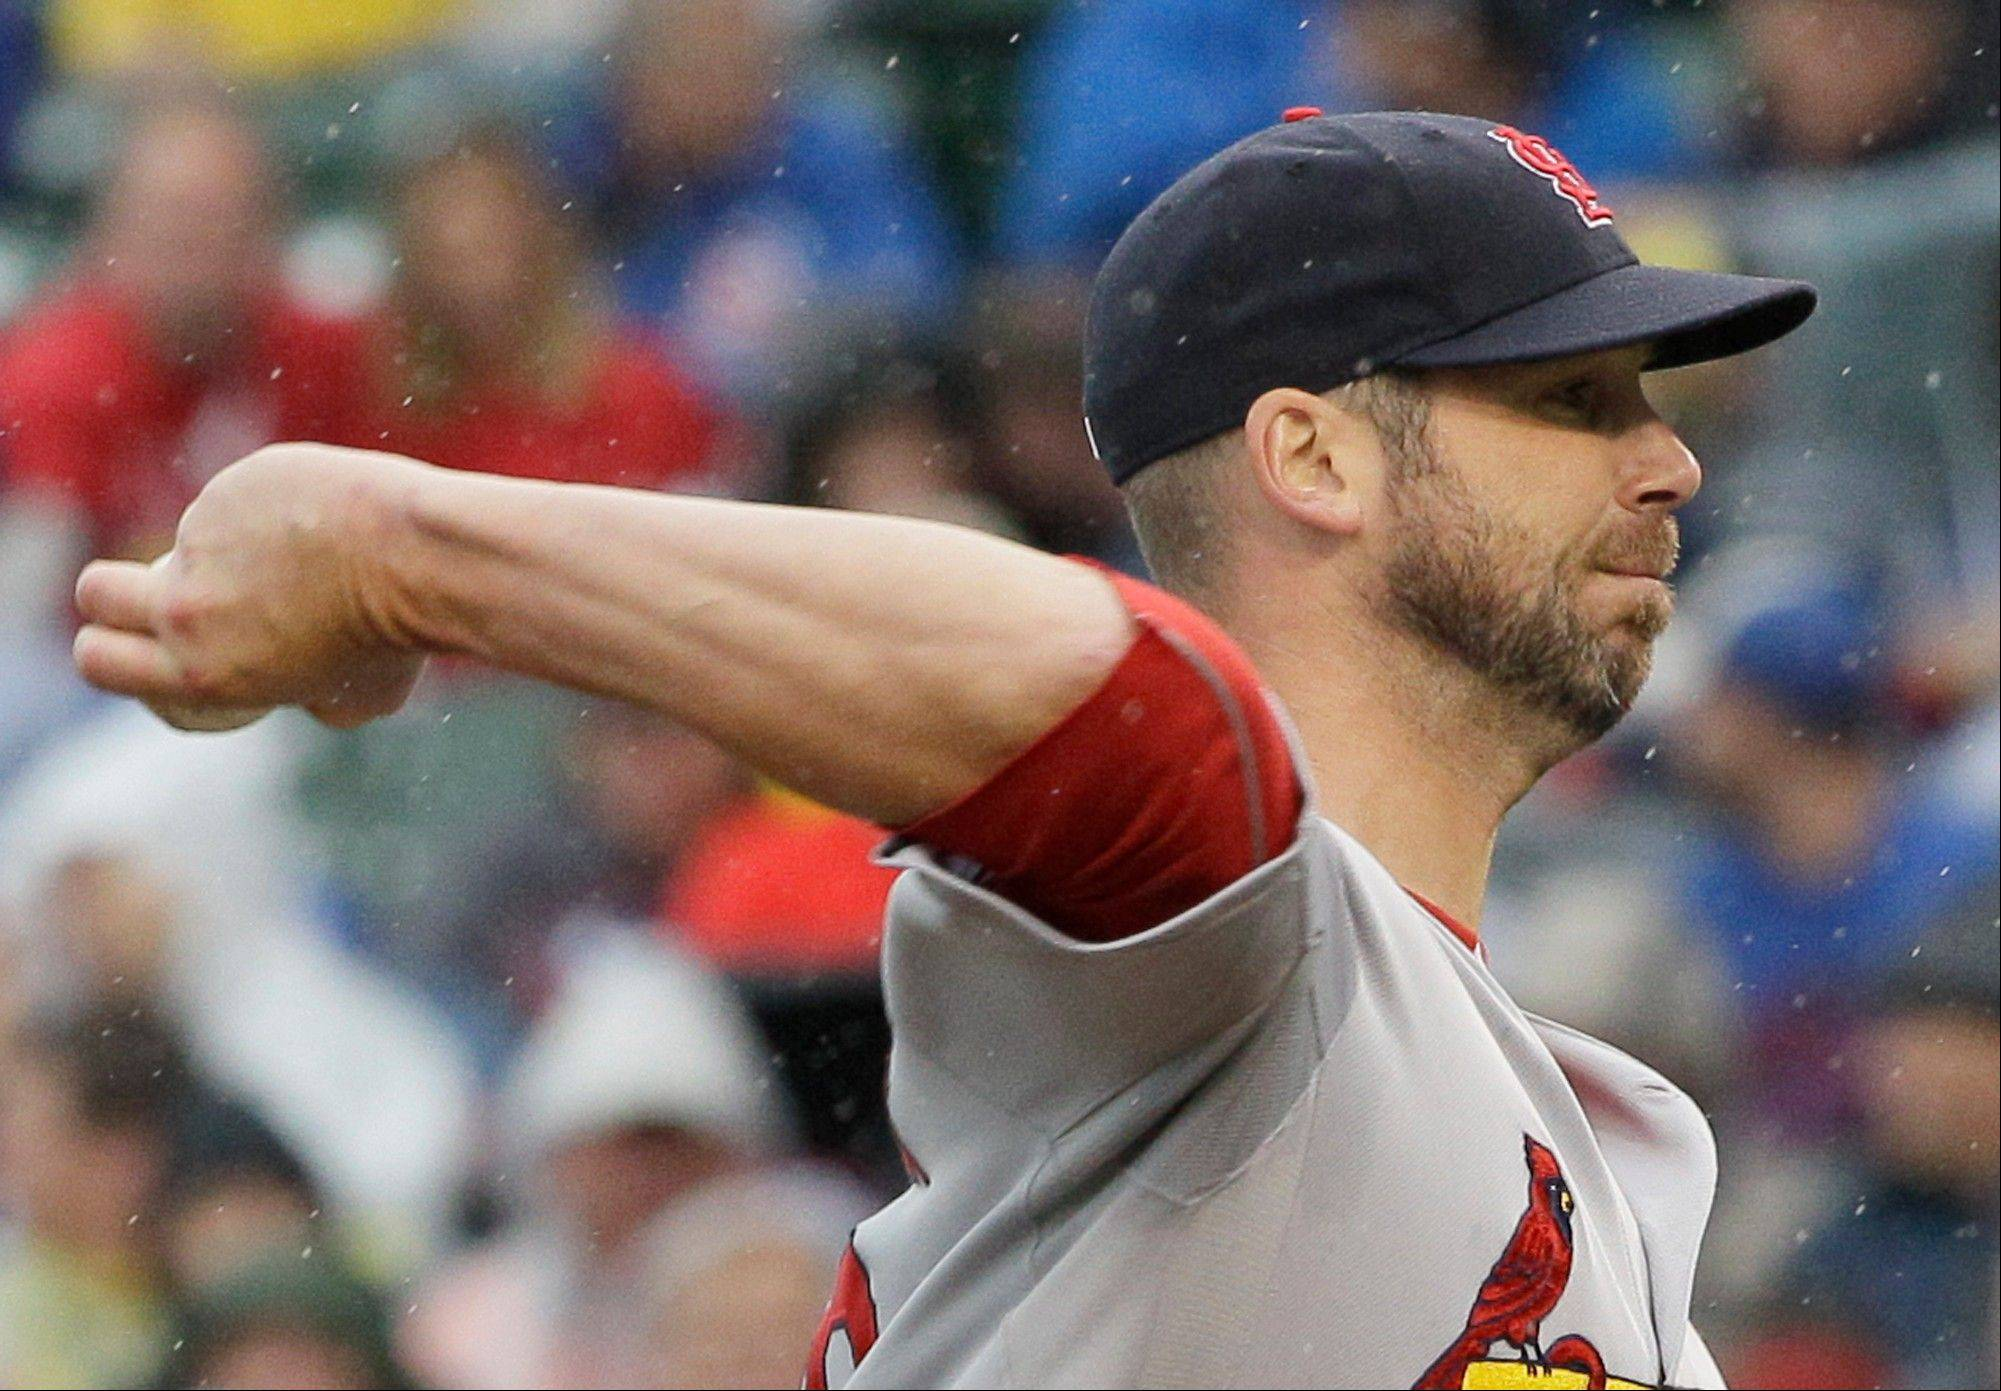 St. Louis Cardinals starter Chris Carpenter, shown here pitching against the Cubs on Sept. 21, 2012, is not expected to pitch next season due to a nerve injury, according to Cardinals GM John Mozeliak, and his pro career is likely over at age 37.